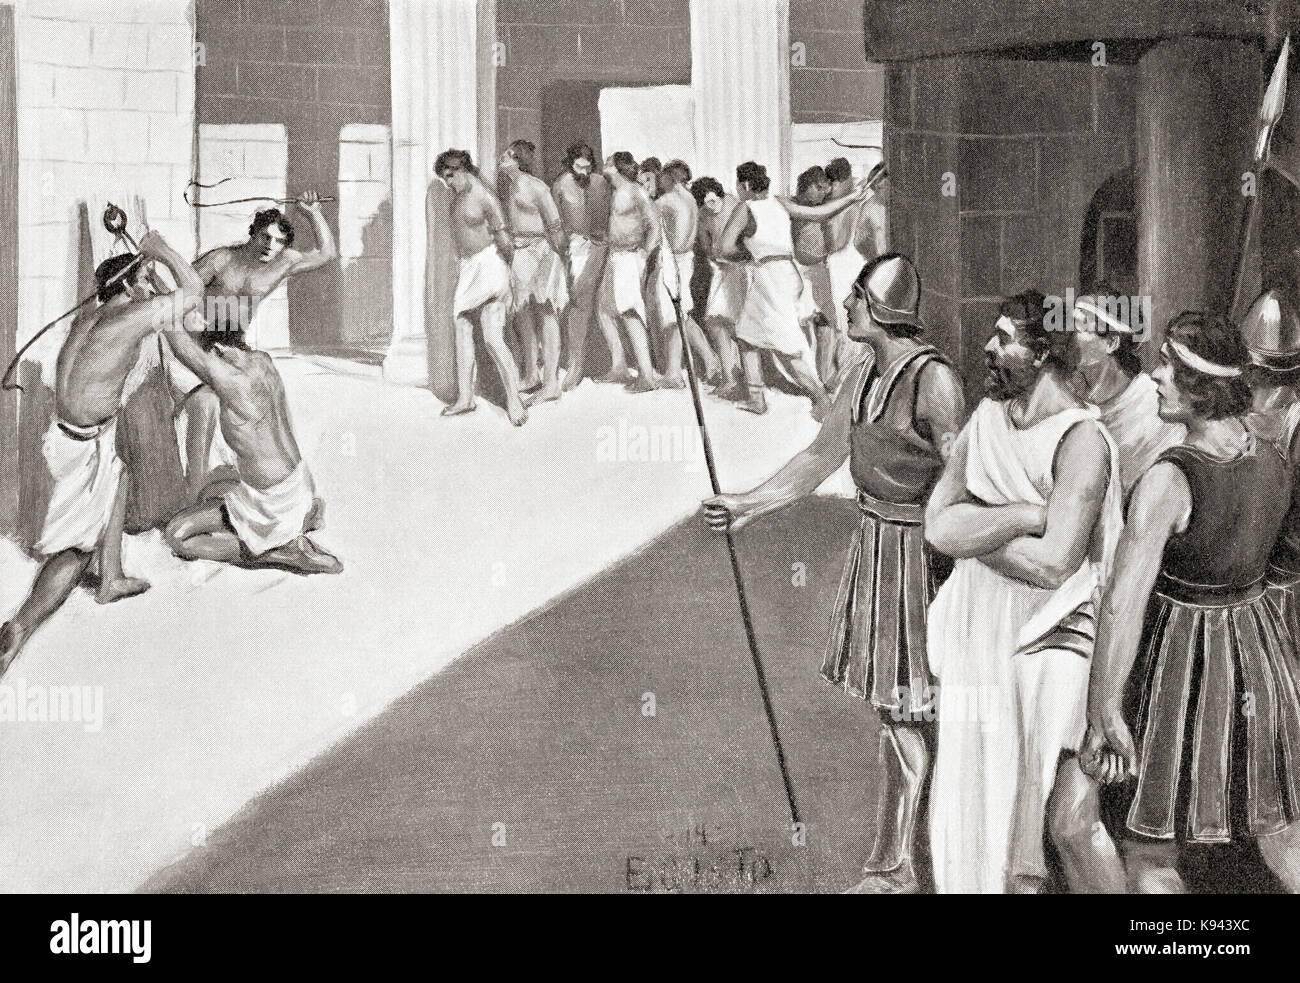 an analysis of cruelty in the ancient rome and its people Ancient rome mattersits history of empire, conquest, cruelty and excess is something against which we still judge ourselves its myths and stories - from romulus and remus to the rape of lucretia - still strike a chord with us.